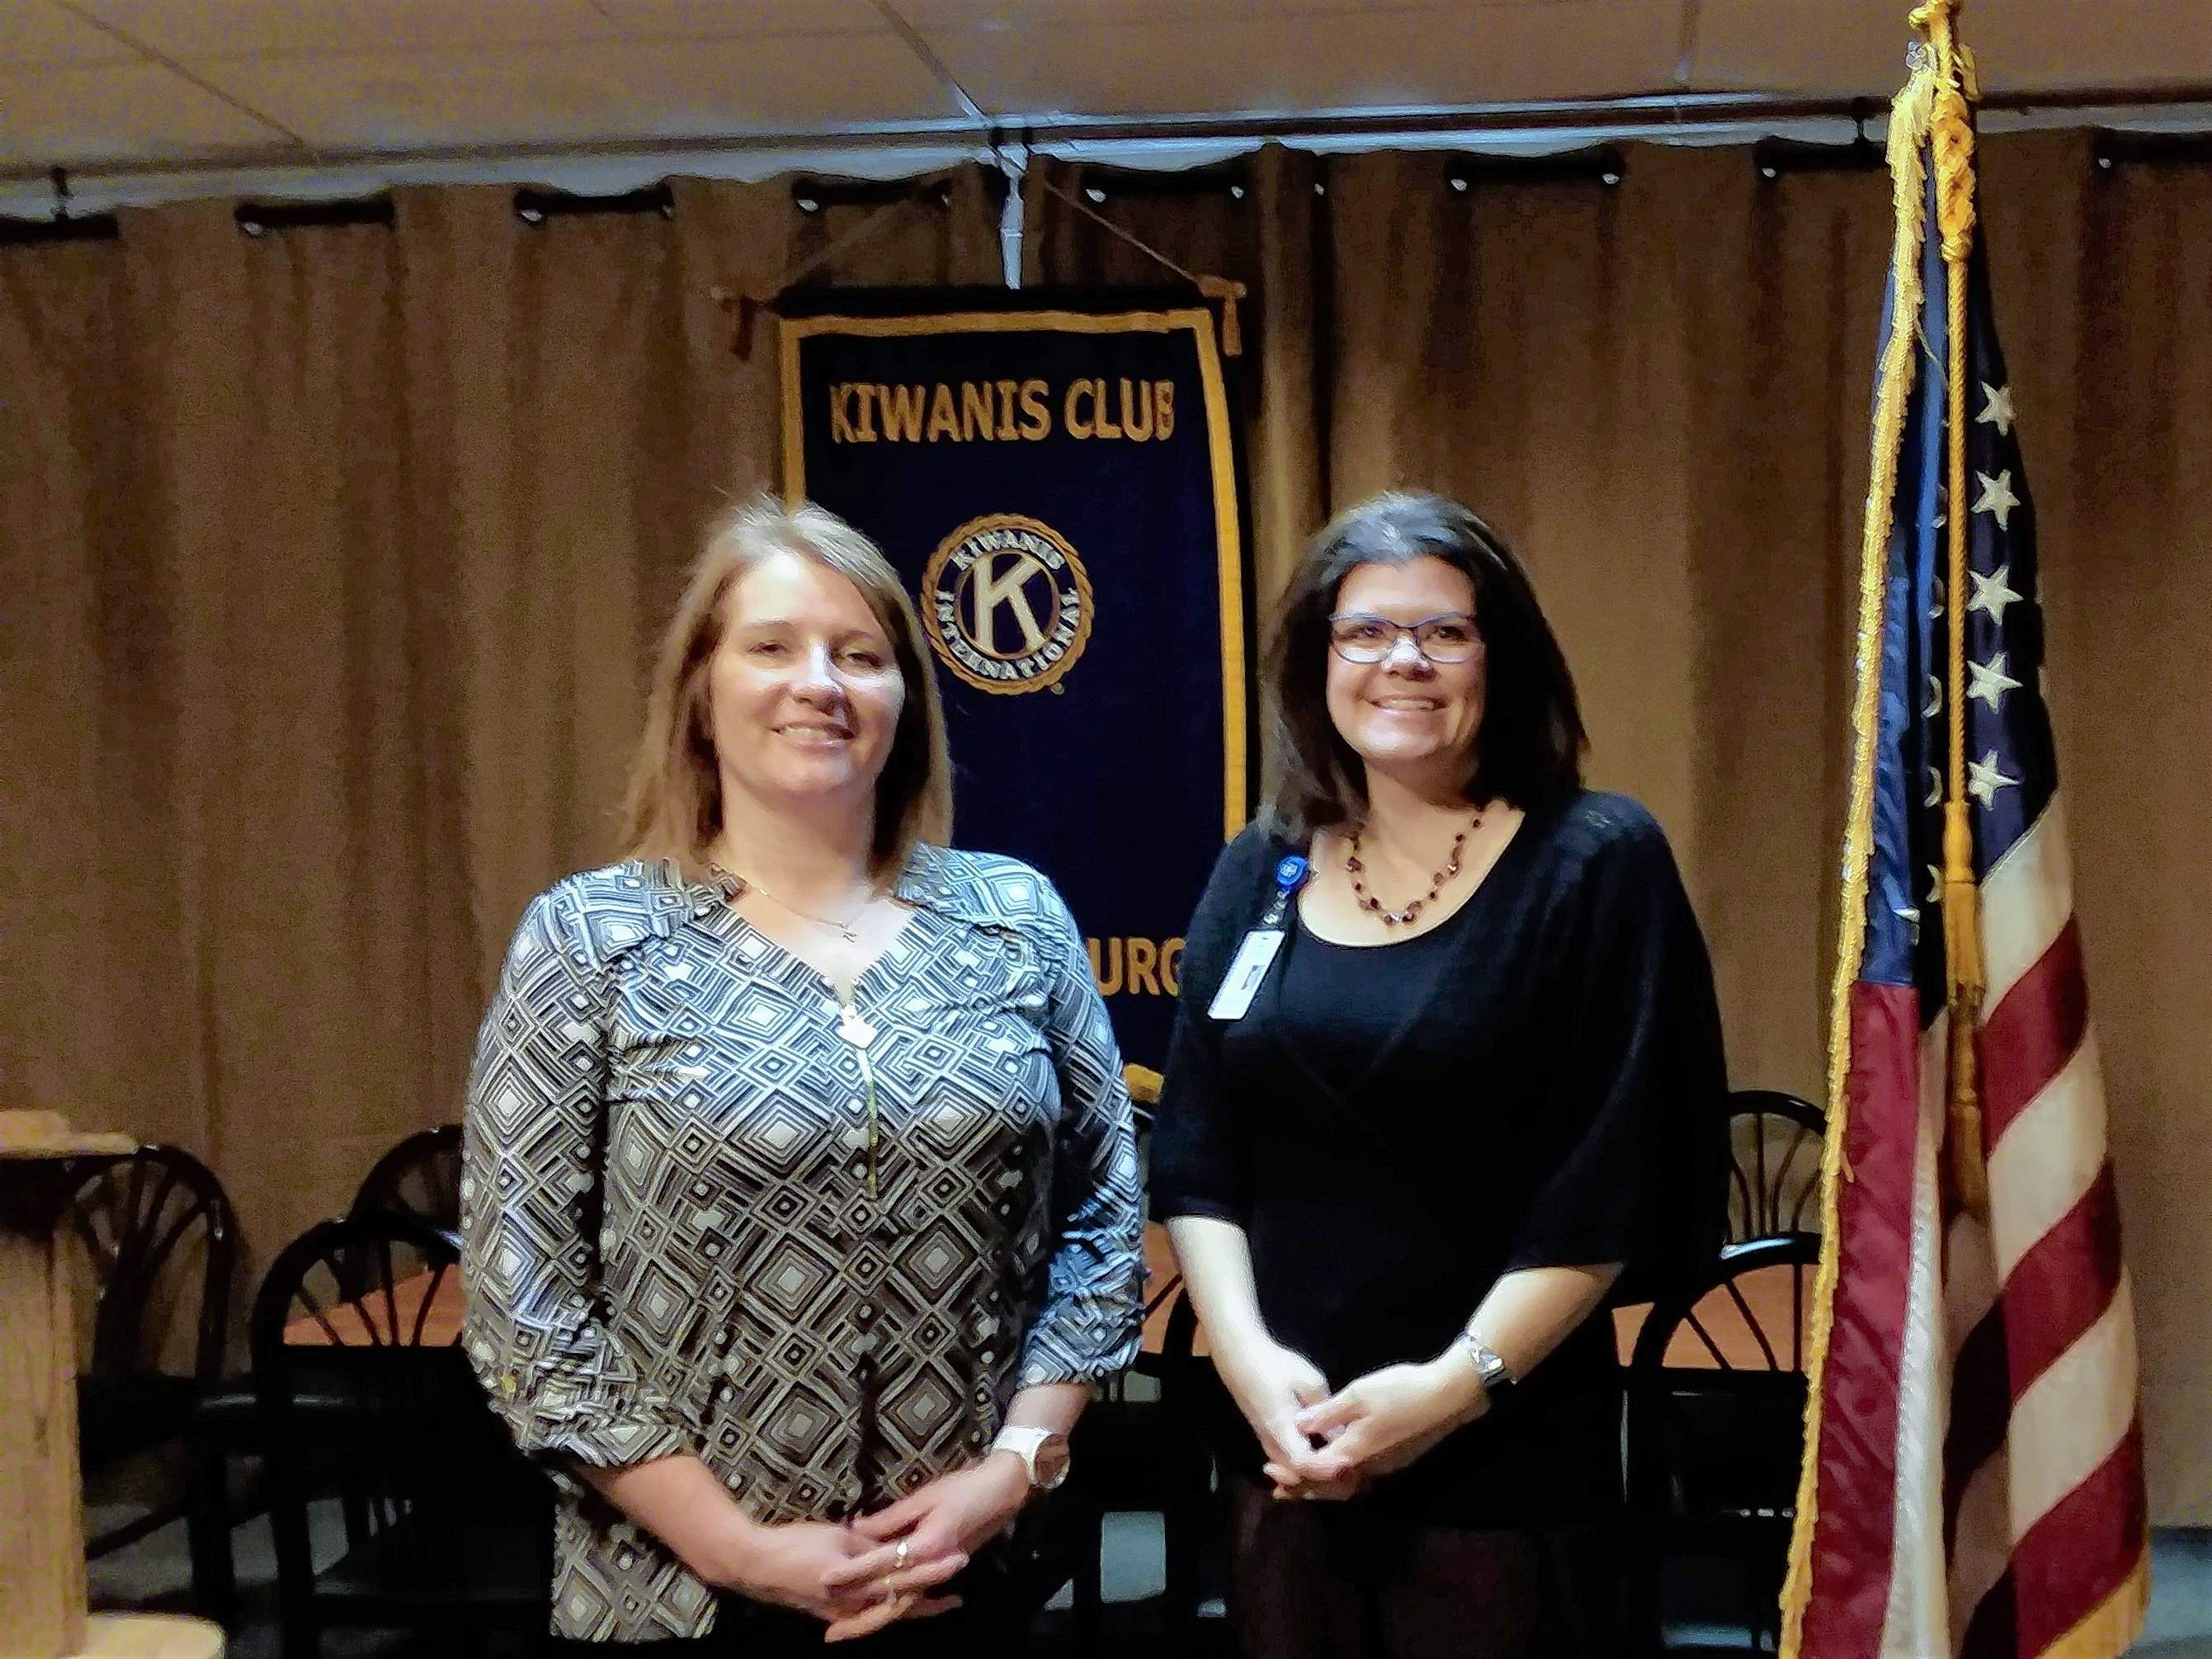 From left, Kiwanis President Amy Short and guest Lauren Sanders stand for a photo. (Not available for photo, Keith Brown, program sponsor.)